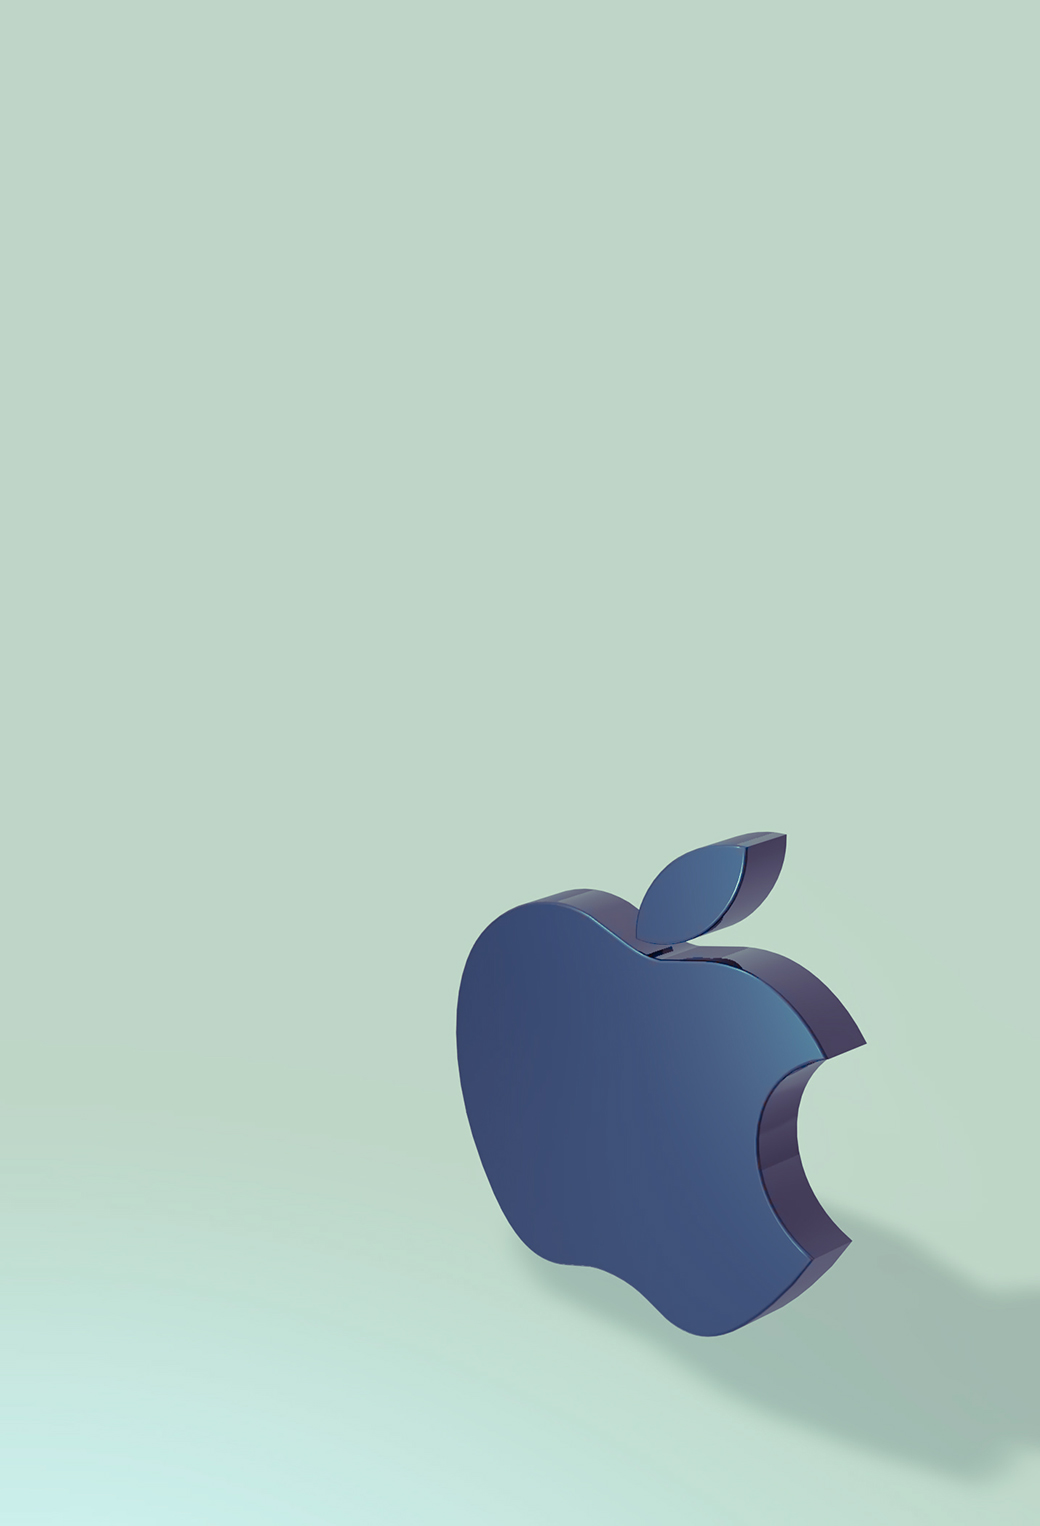 Apple Logo 3d Wallpaper For Iphone X 8 7 6 Free Download On